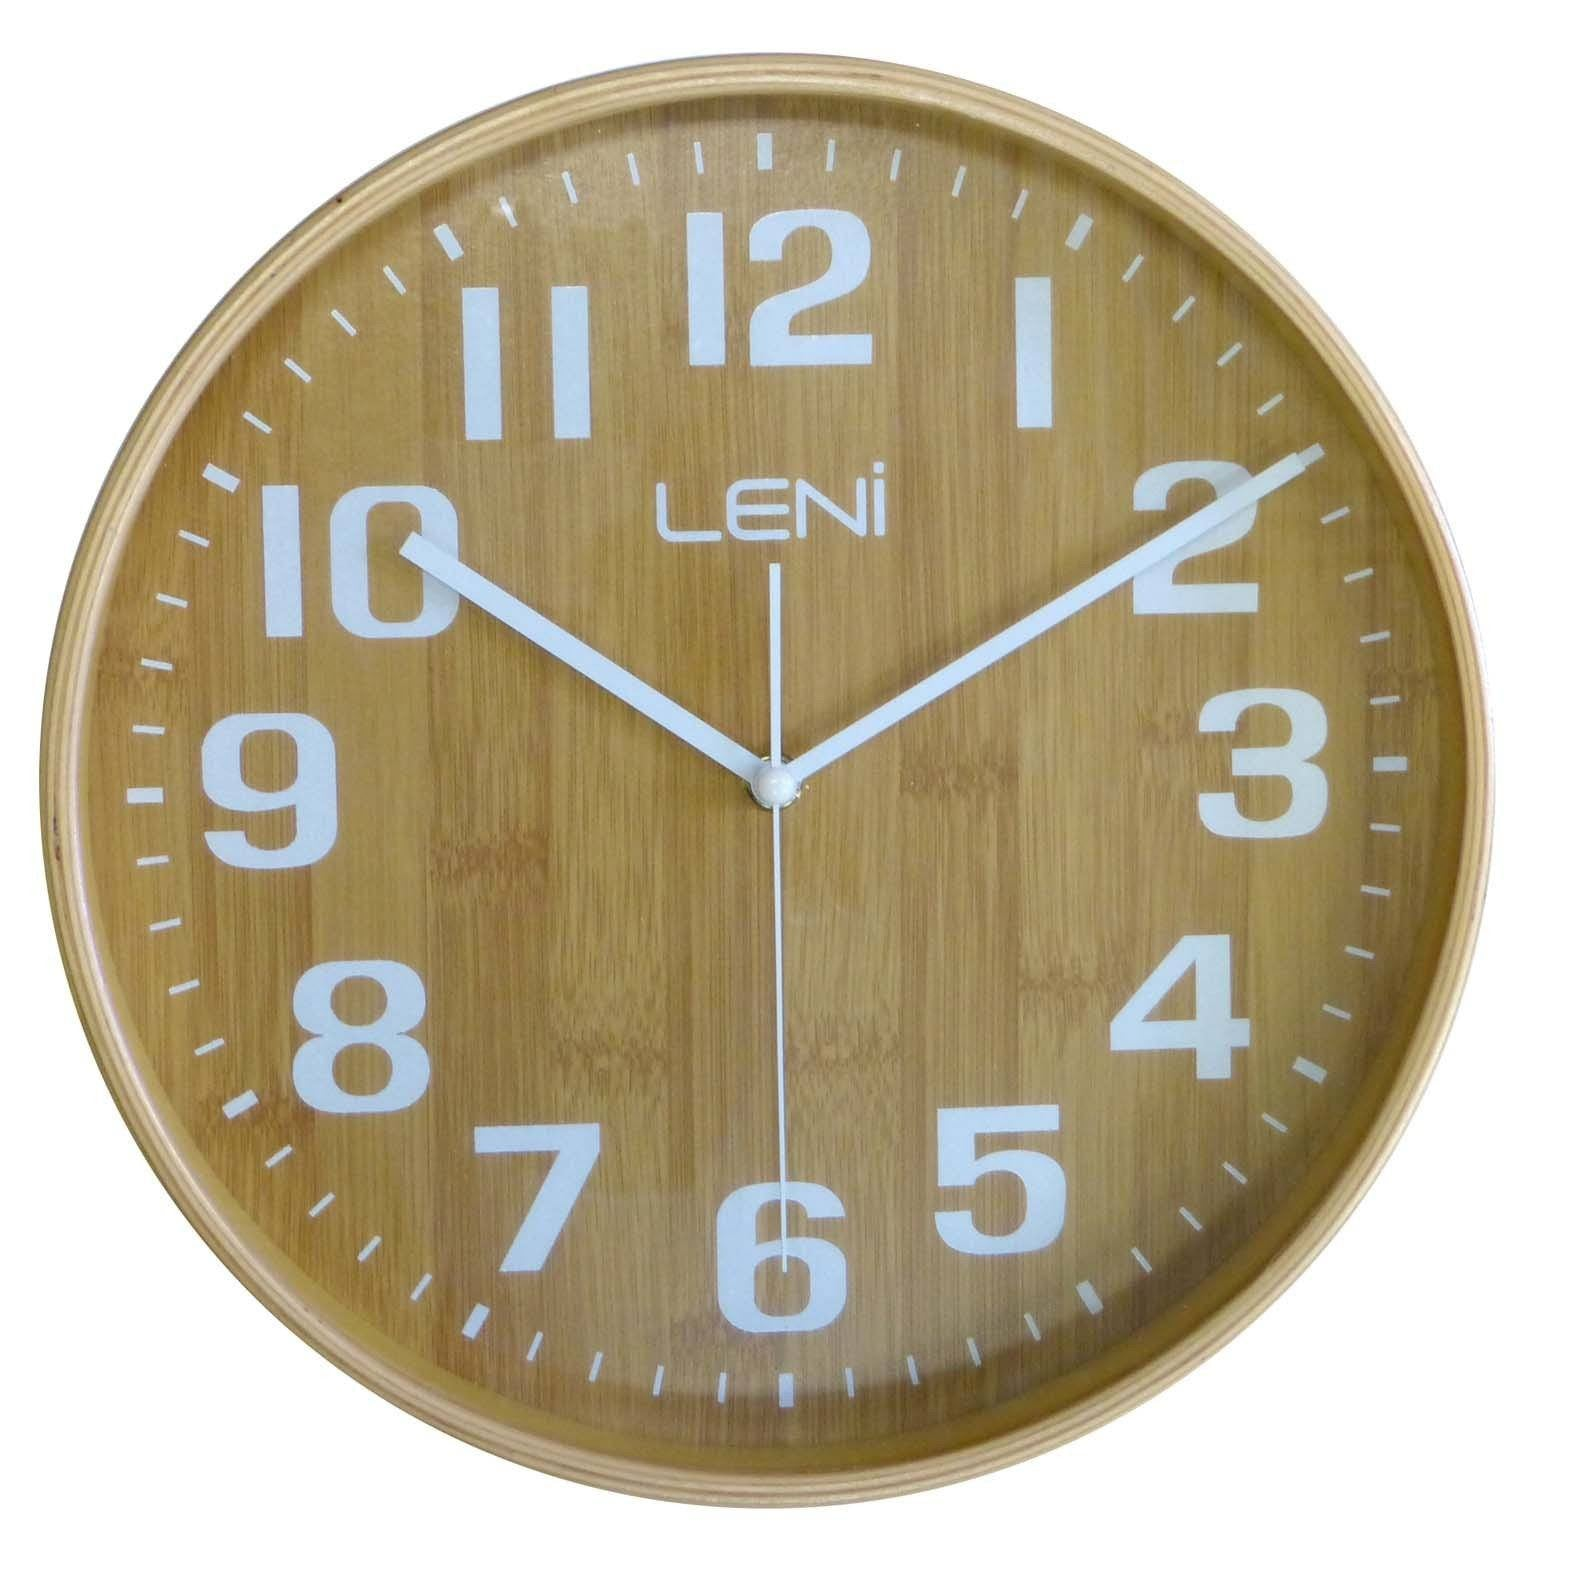 Leni Wood Wall Clock, Bamboo, Small, 28cm